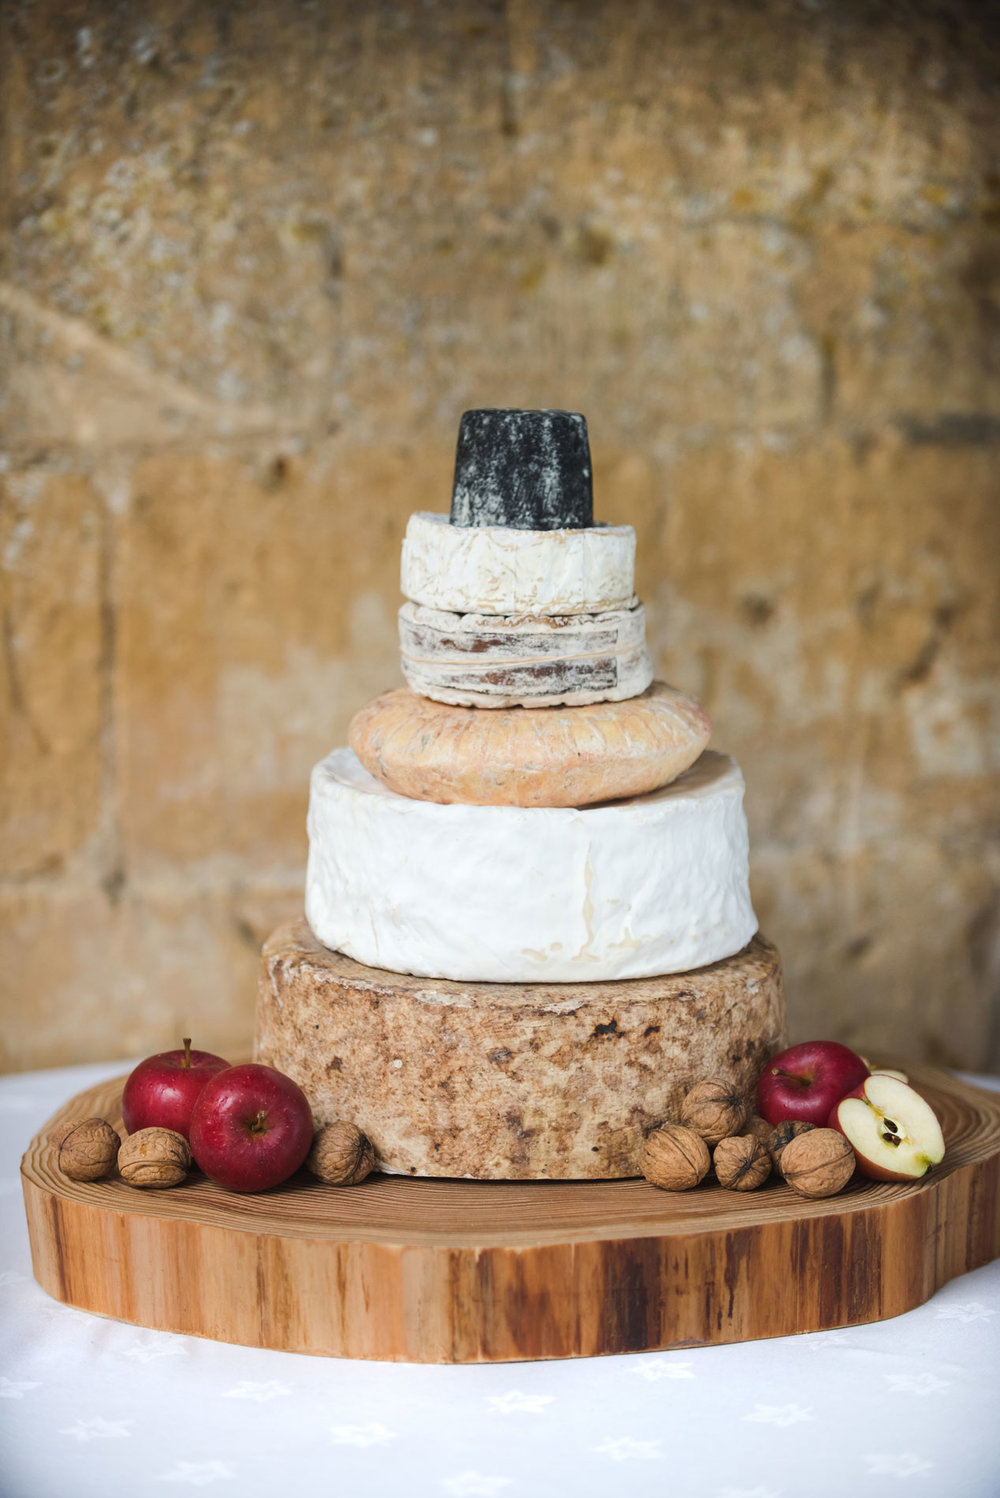 Cotswold-Cheese-Nov-2018-25.jpg